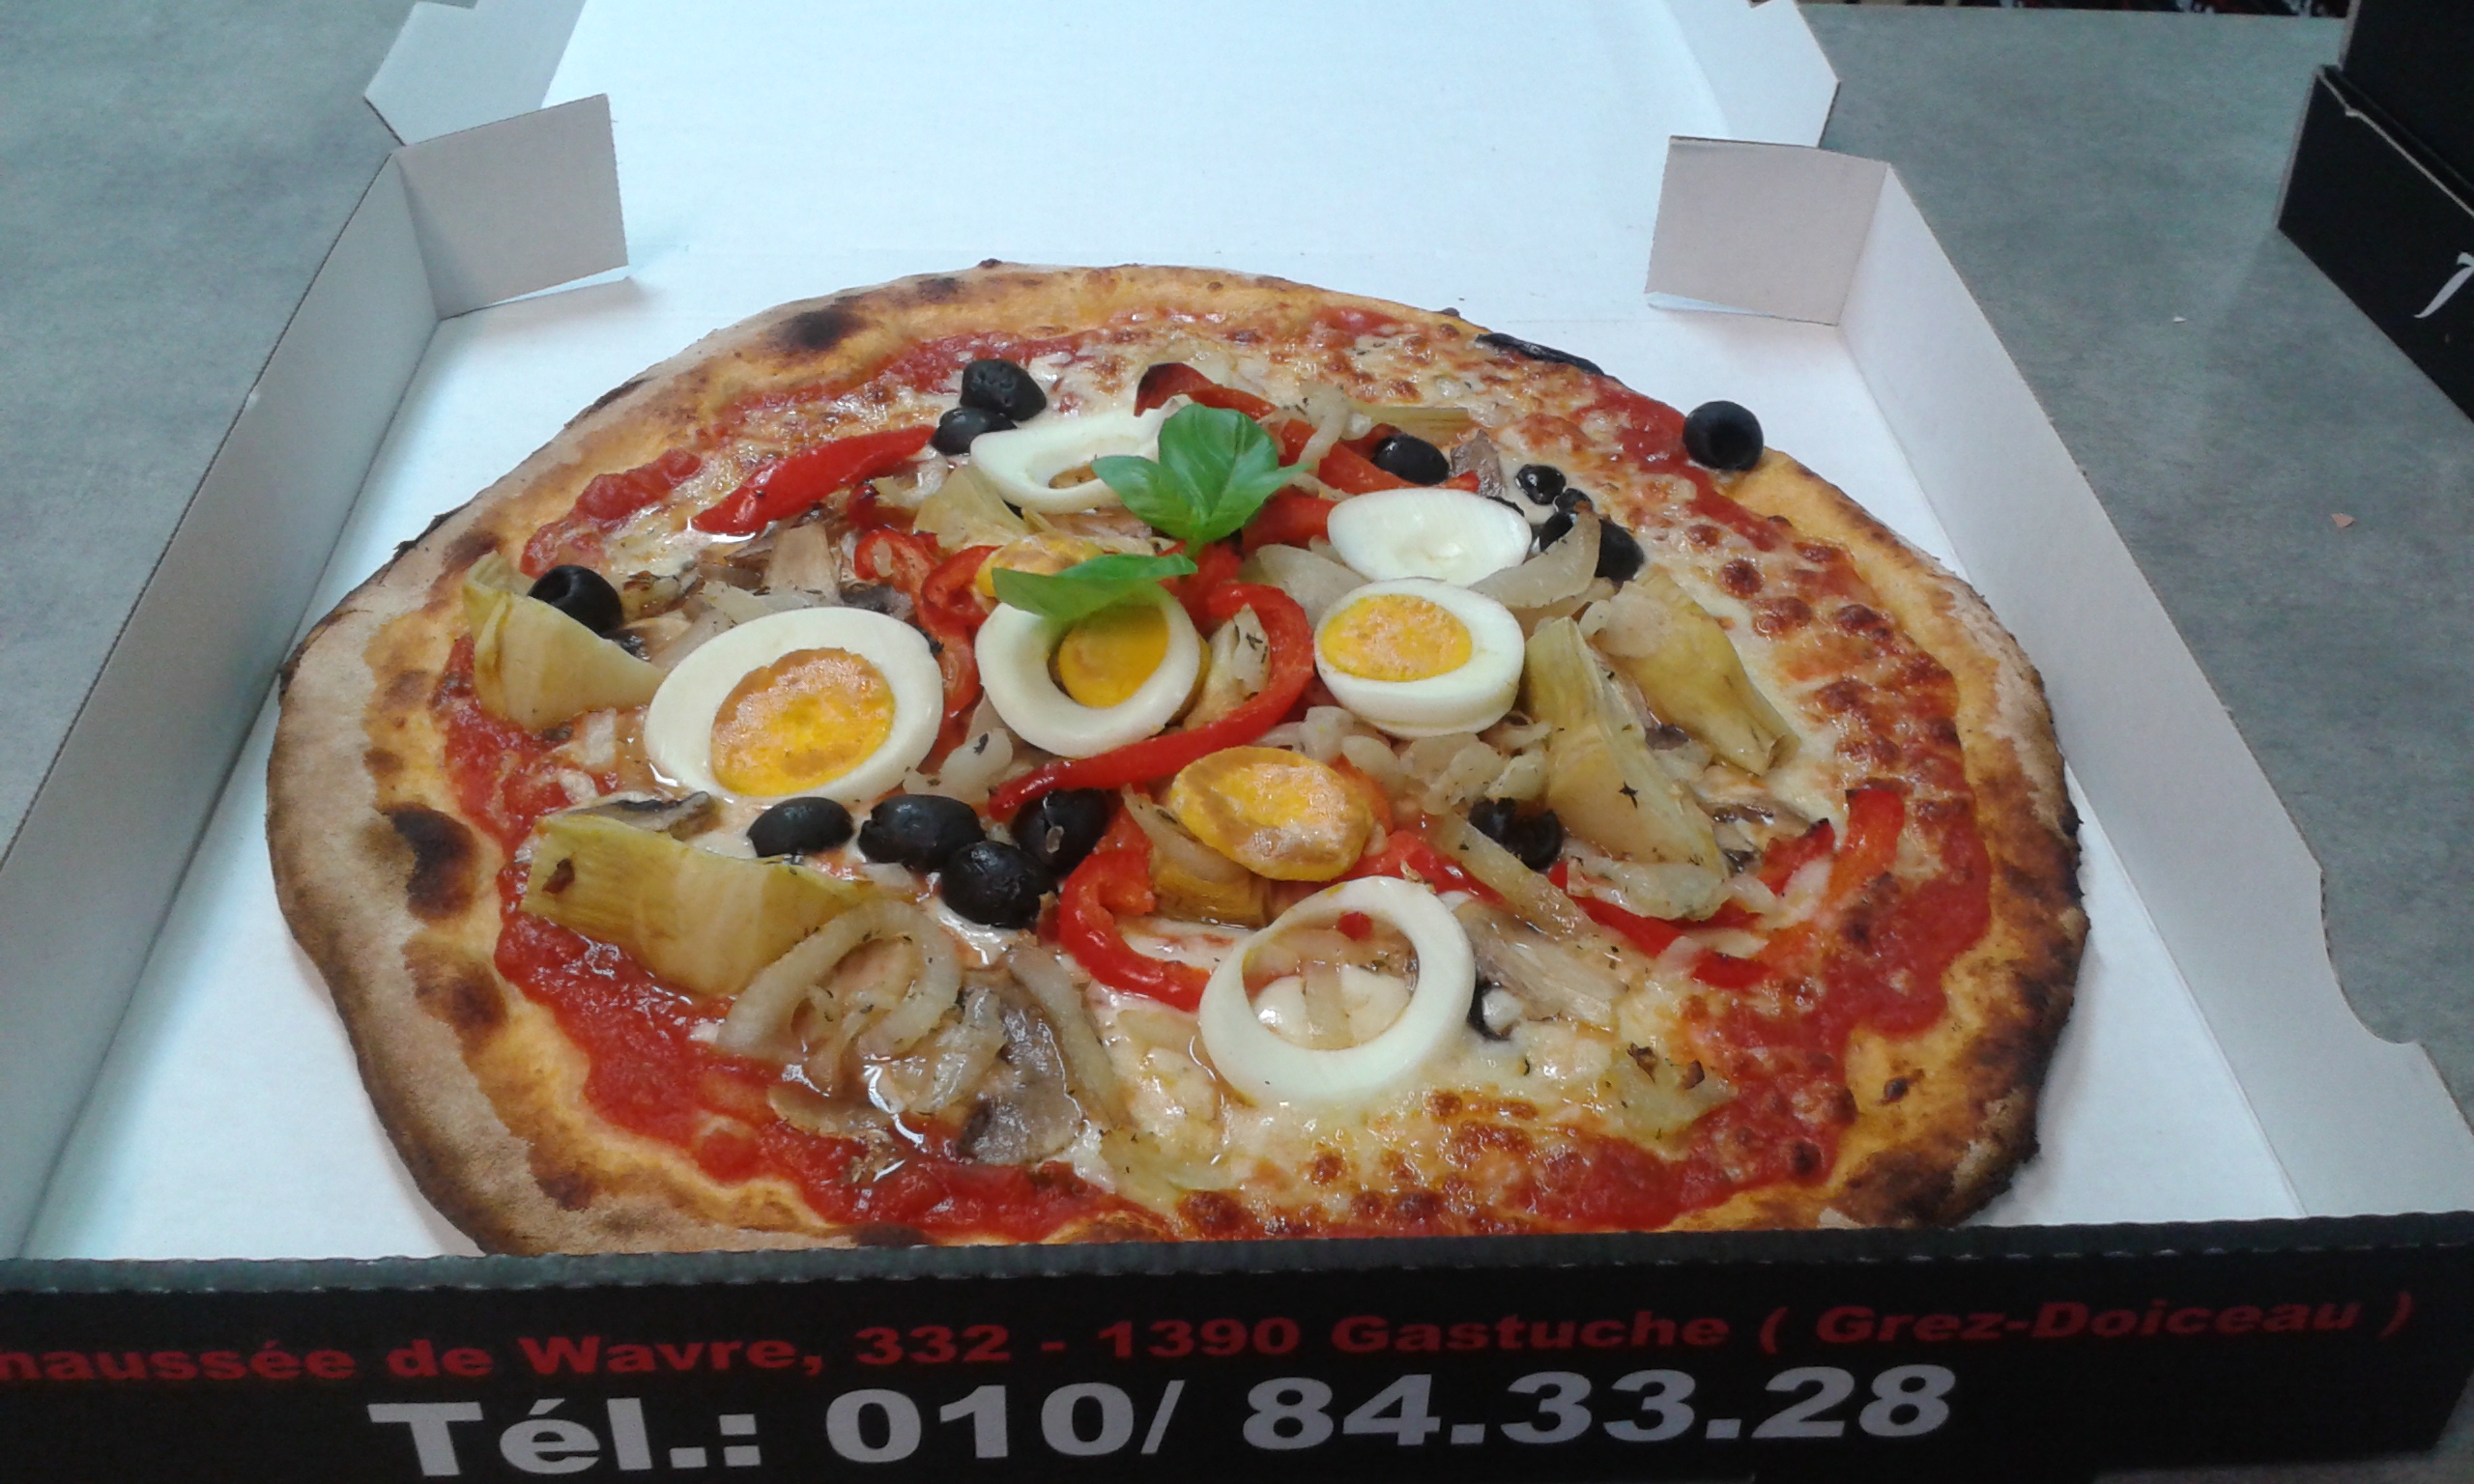 pizza nonna 111 048.jpg